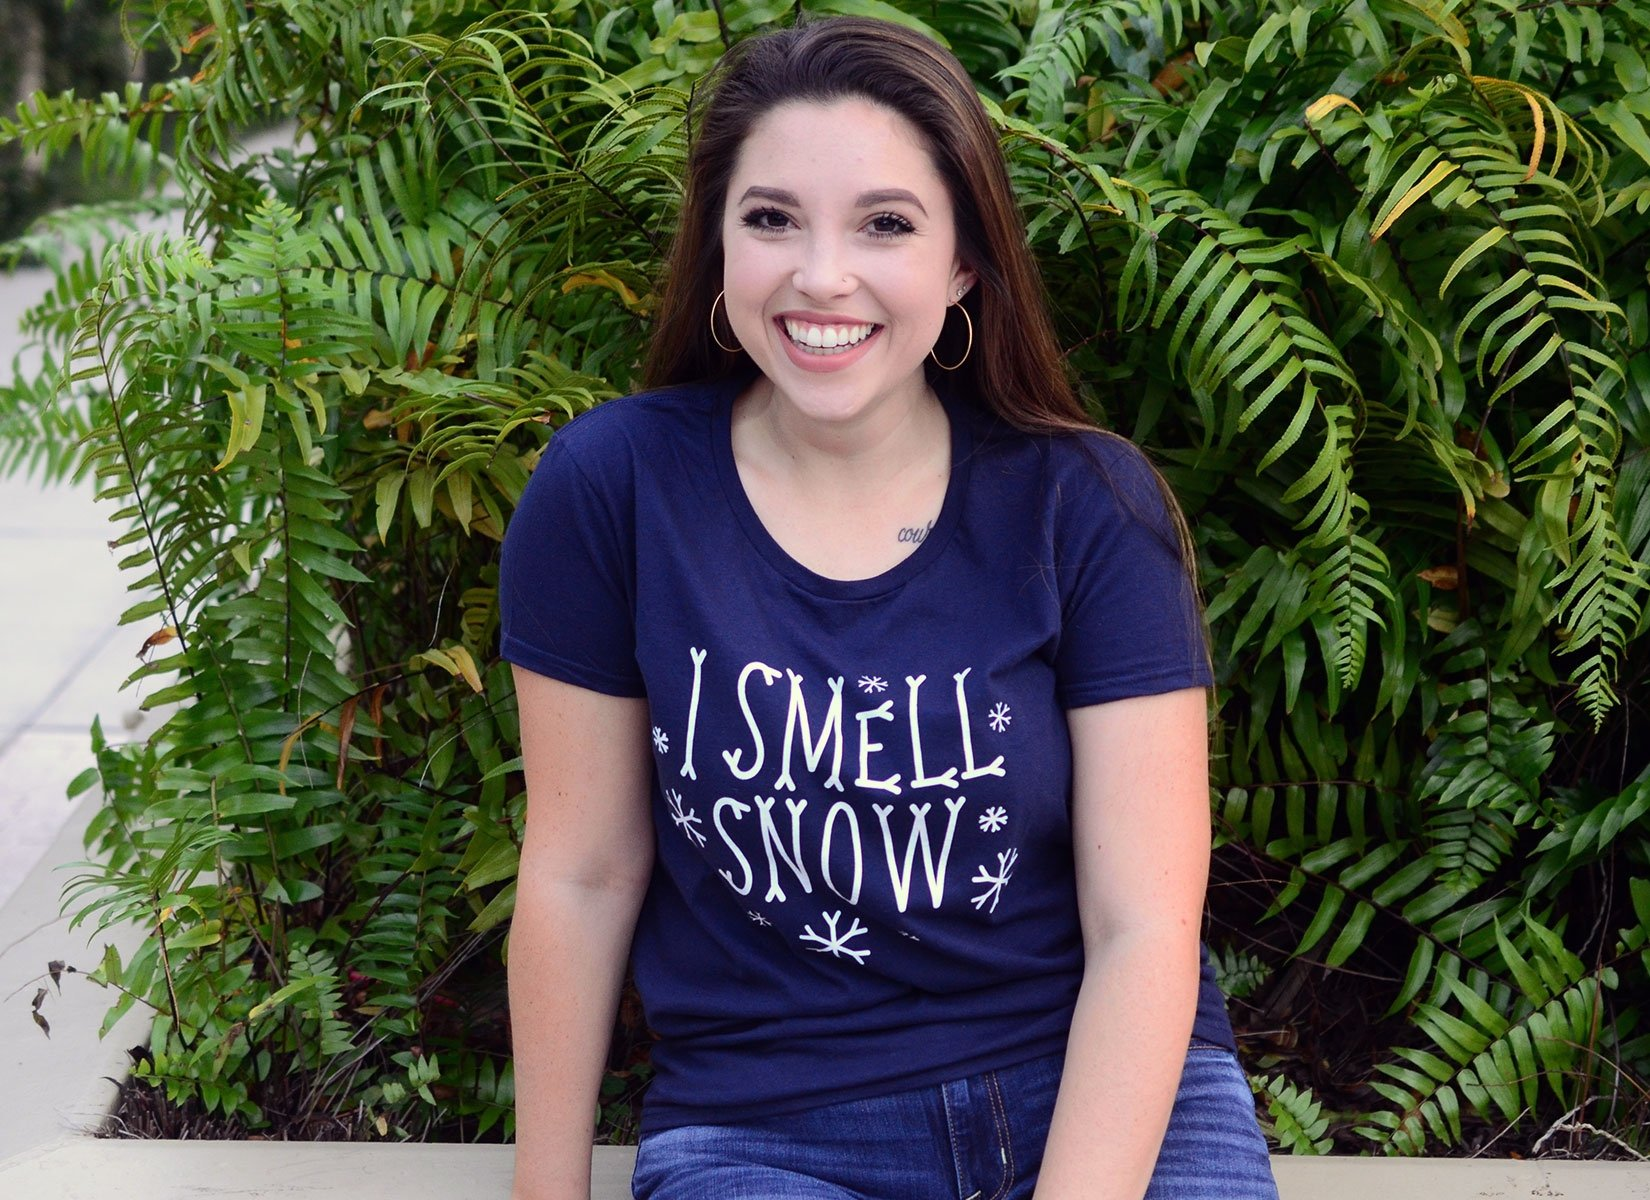 I Smell Snow on Womens T-Shirt